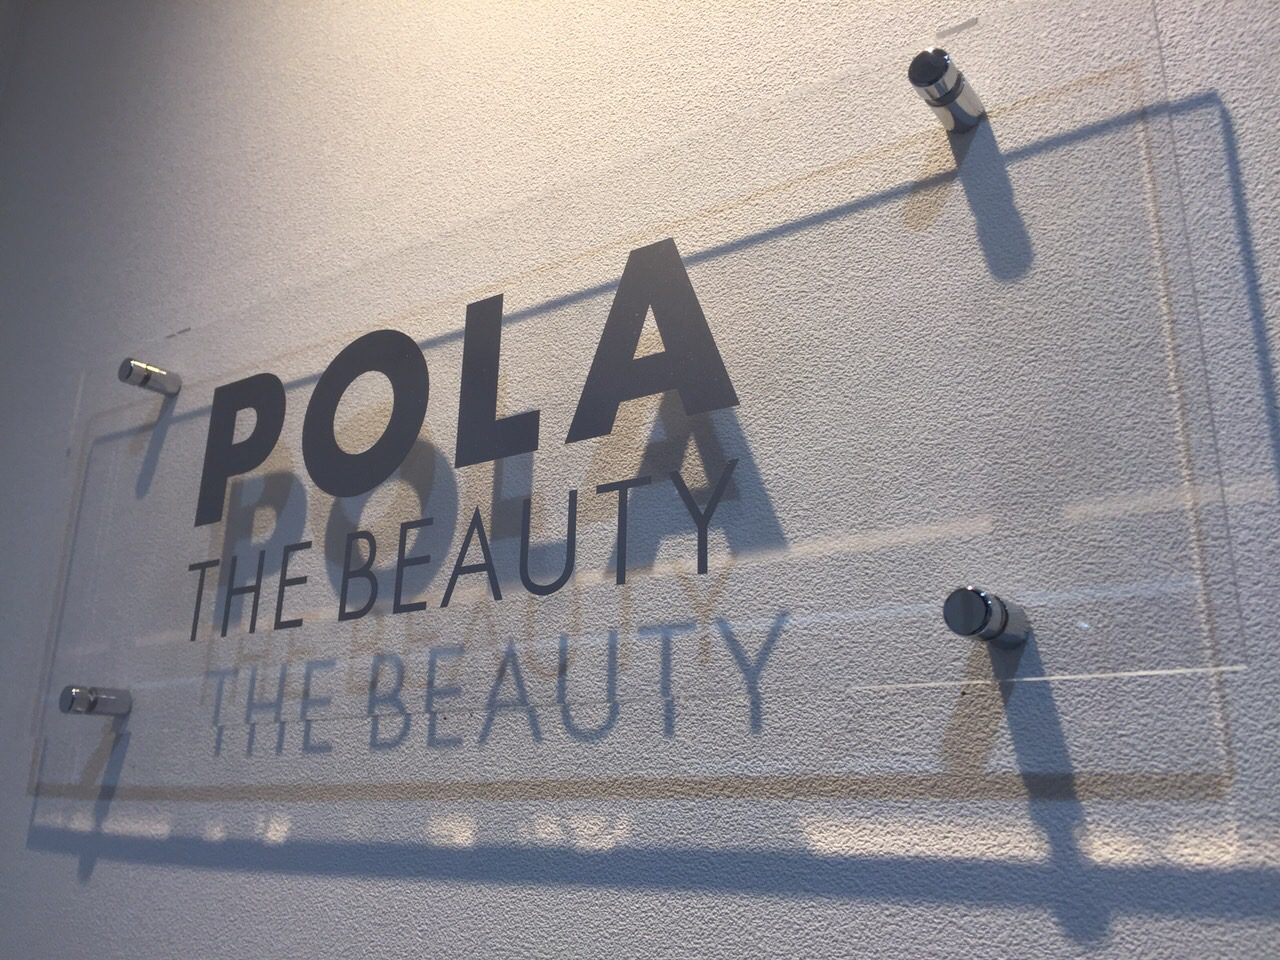 POLA The Beautyの看板